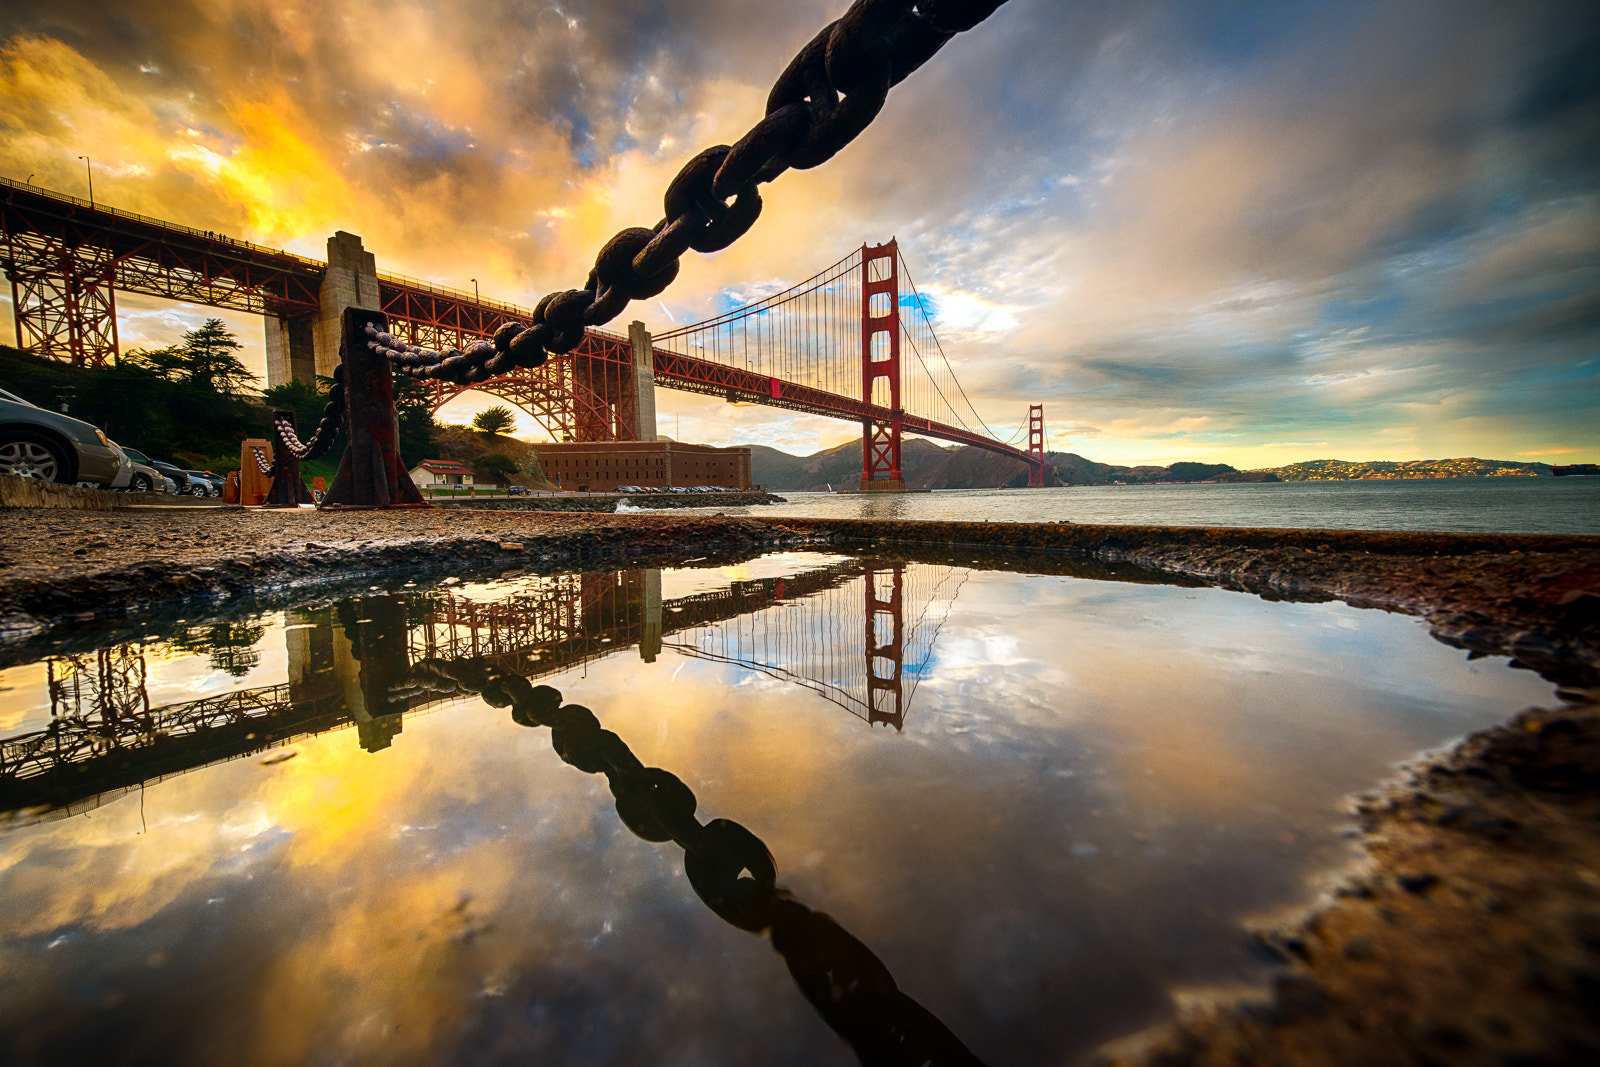 Photograph Golden Golden, Chained by Ali Erturk on 500px